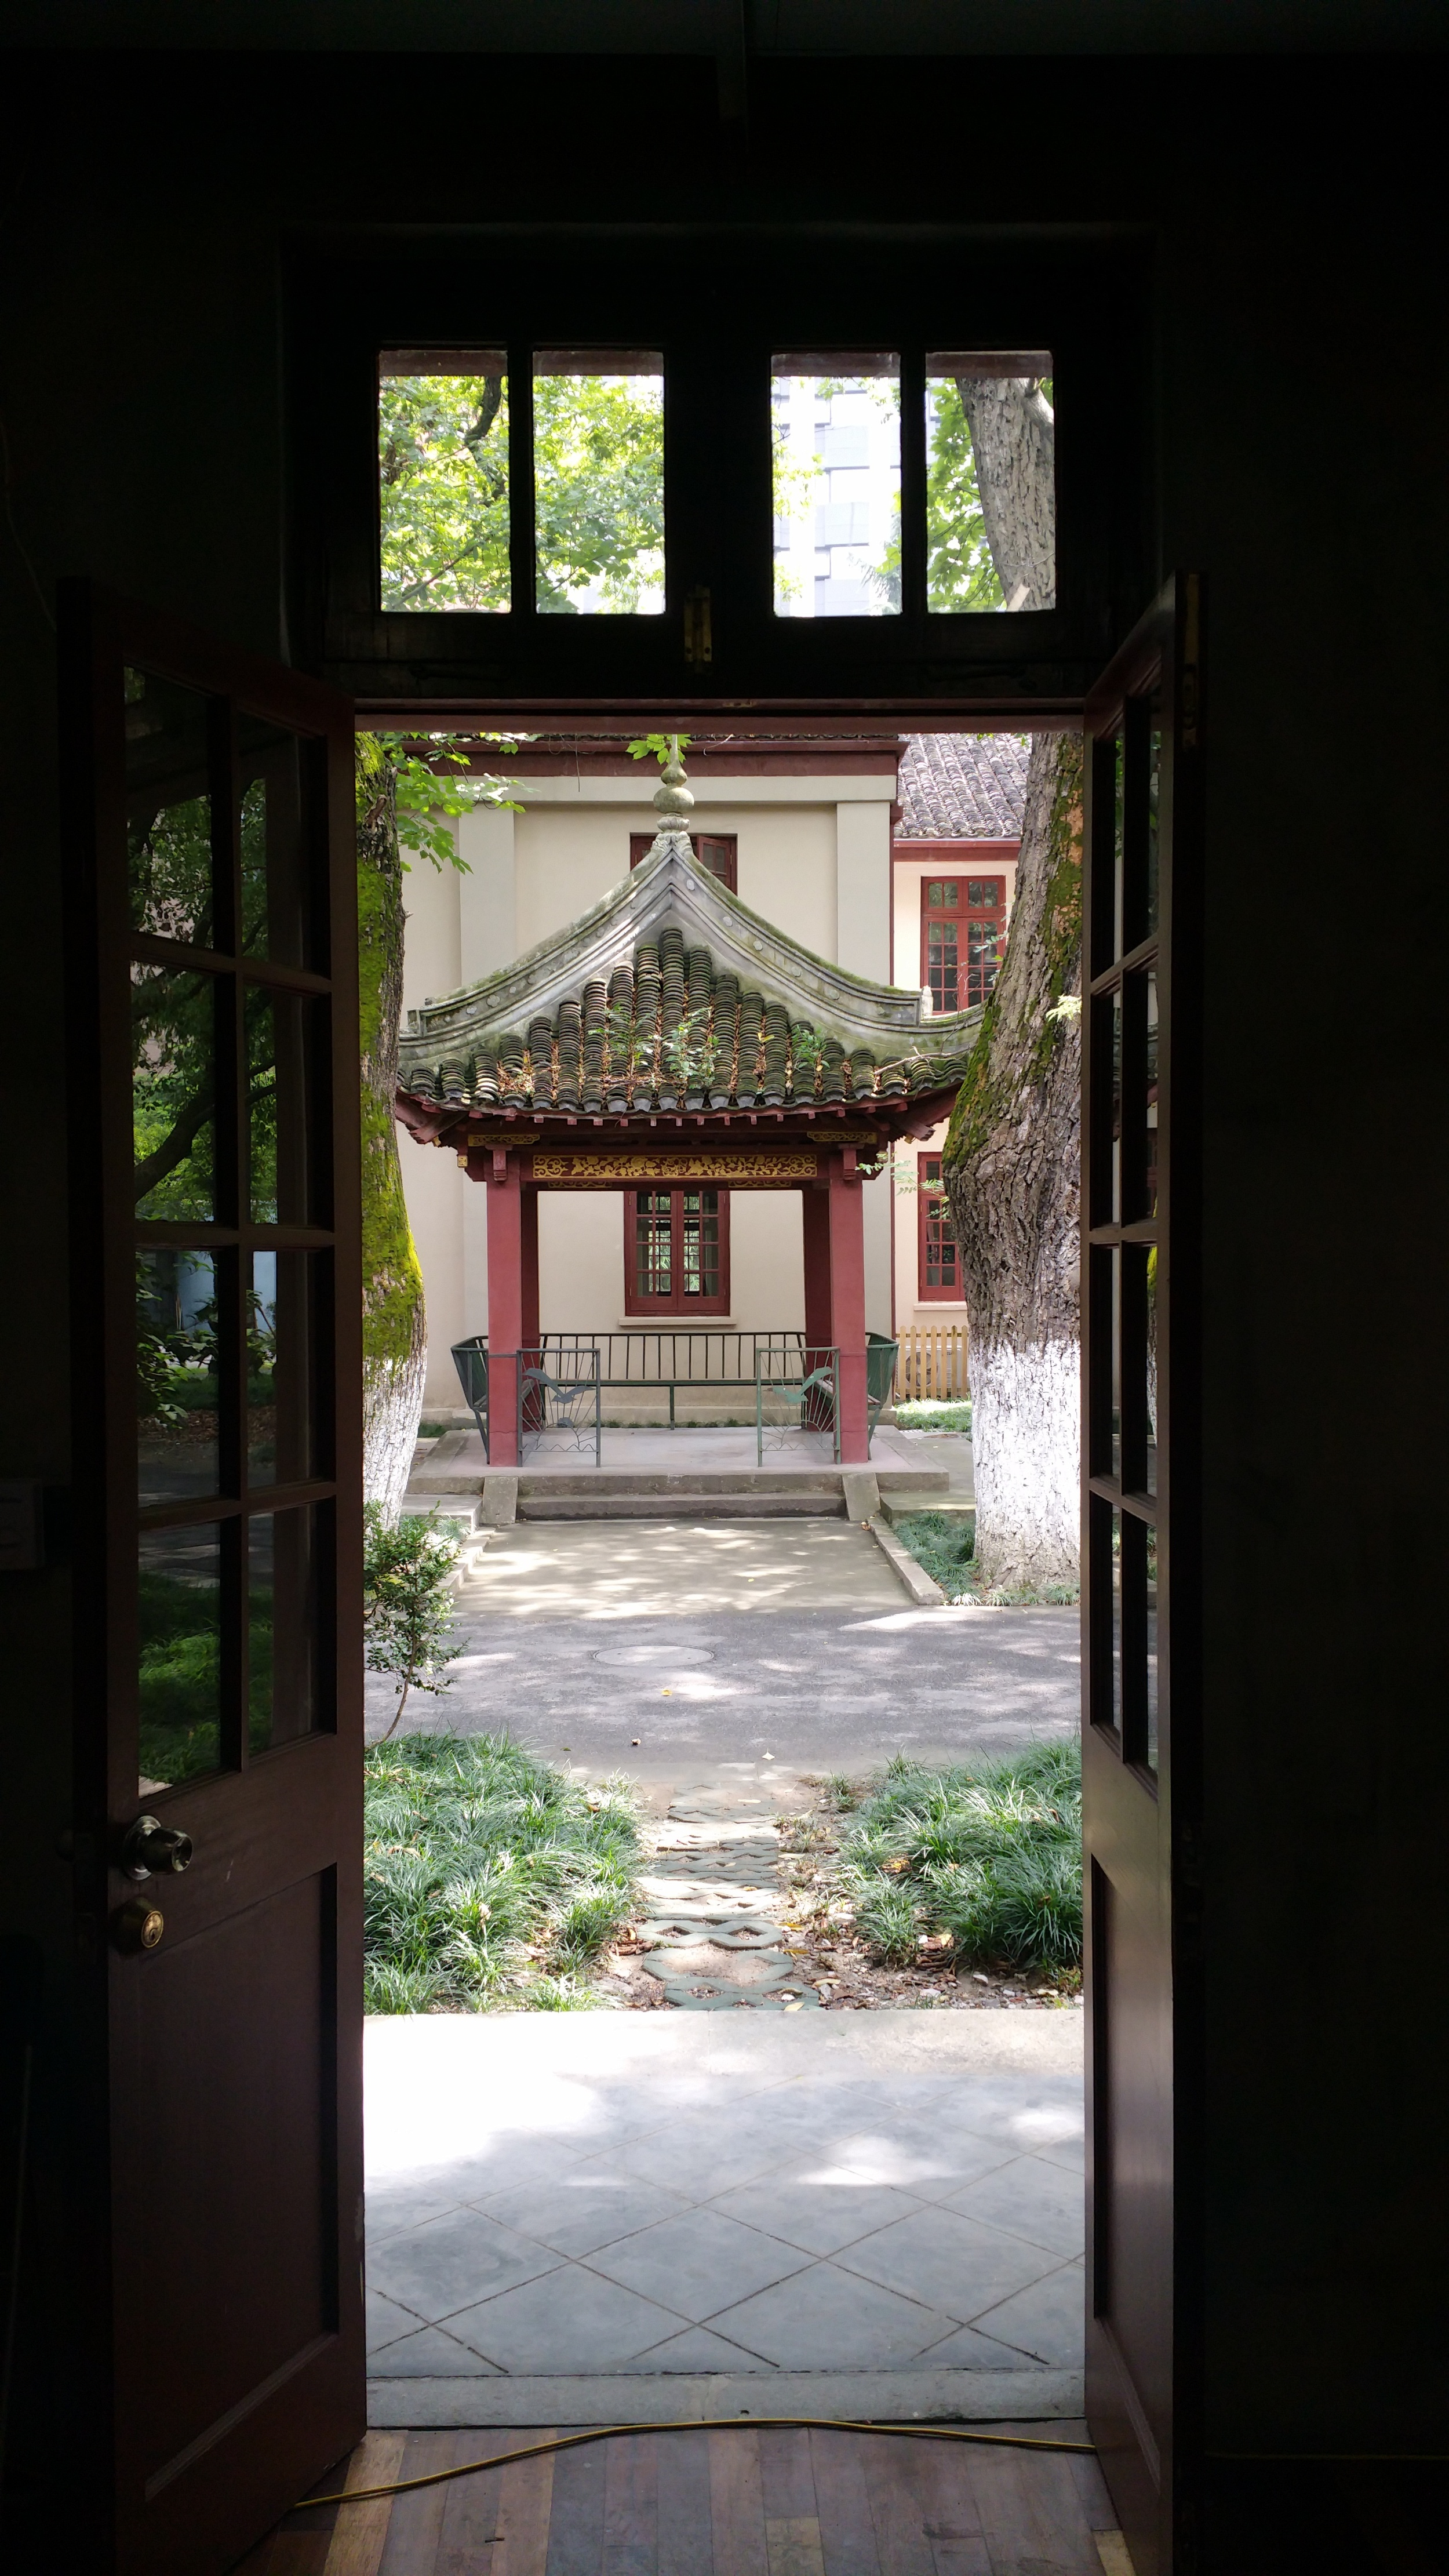 This is the view from outside the lab's door - we have every intention of using our Vive dev kit in the pagoda.